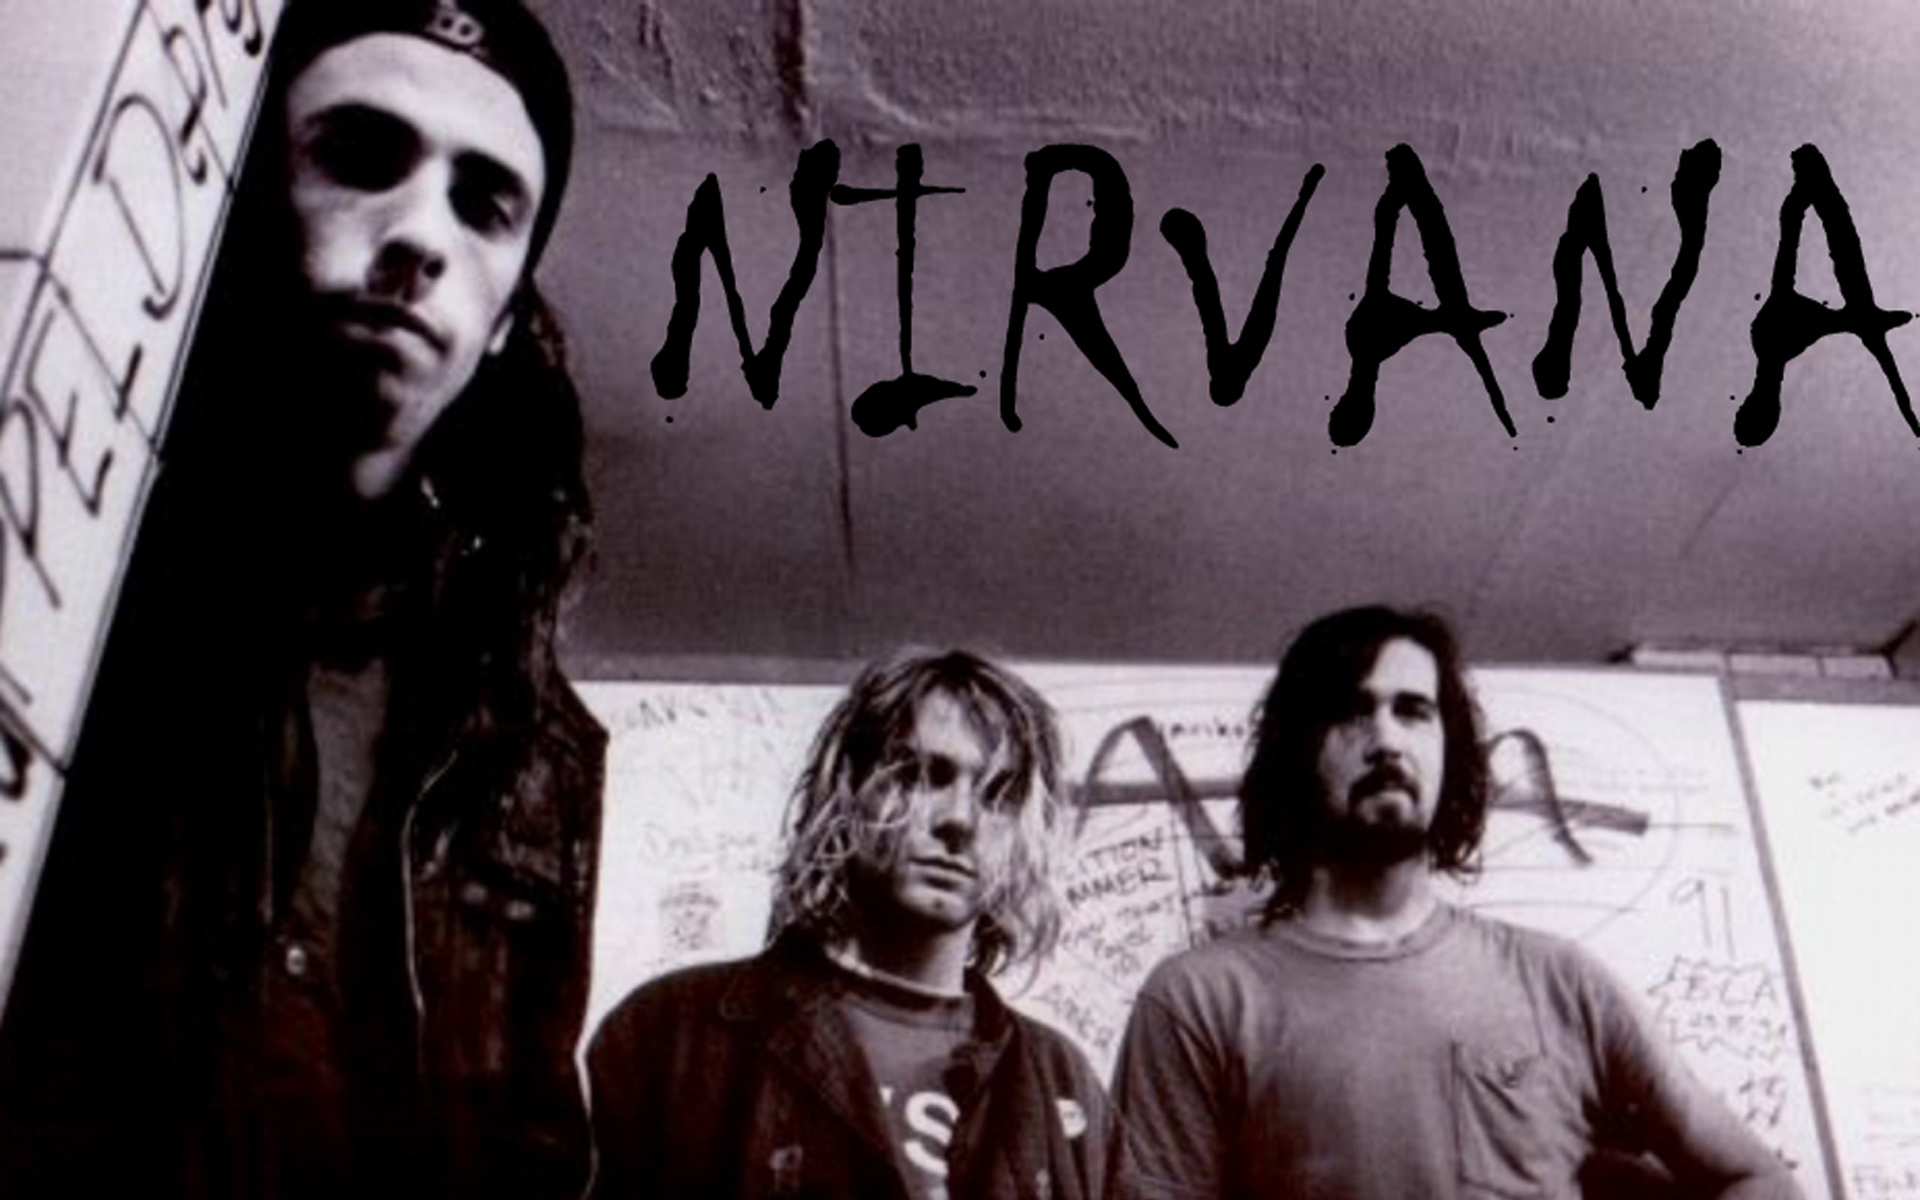 nirvana wallpaper hd